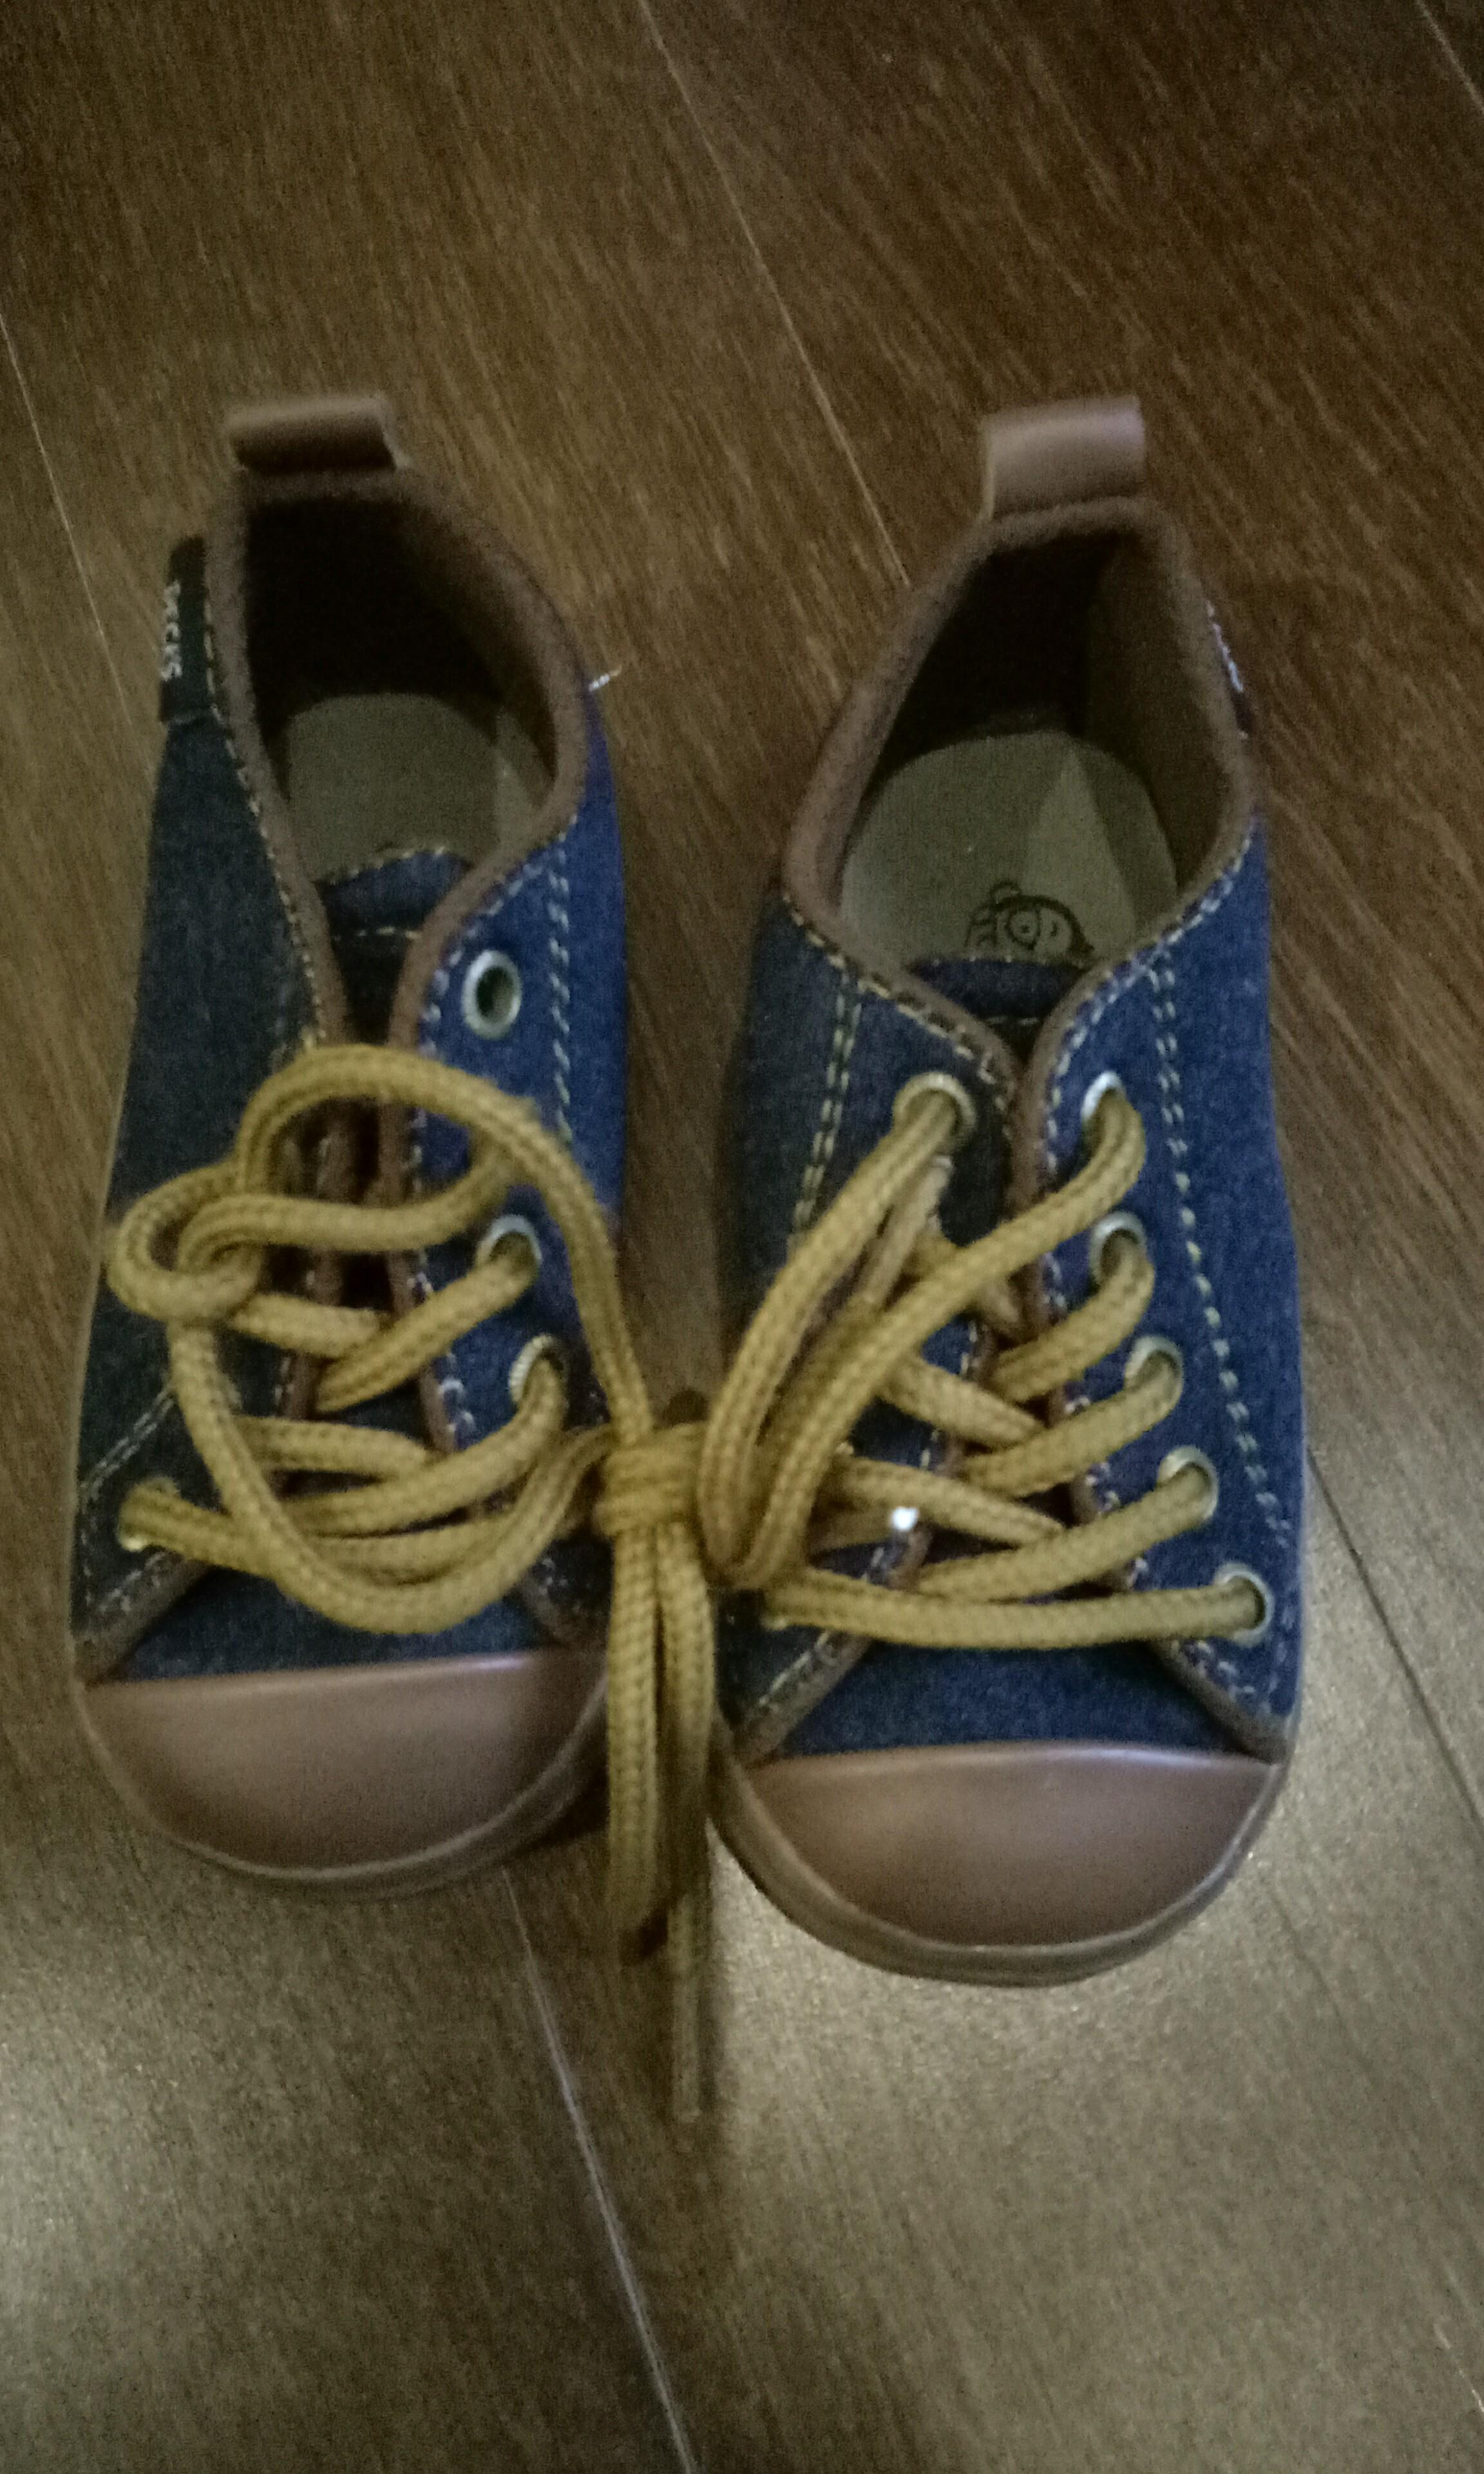 Jeans Shoes (for kids)